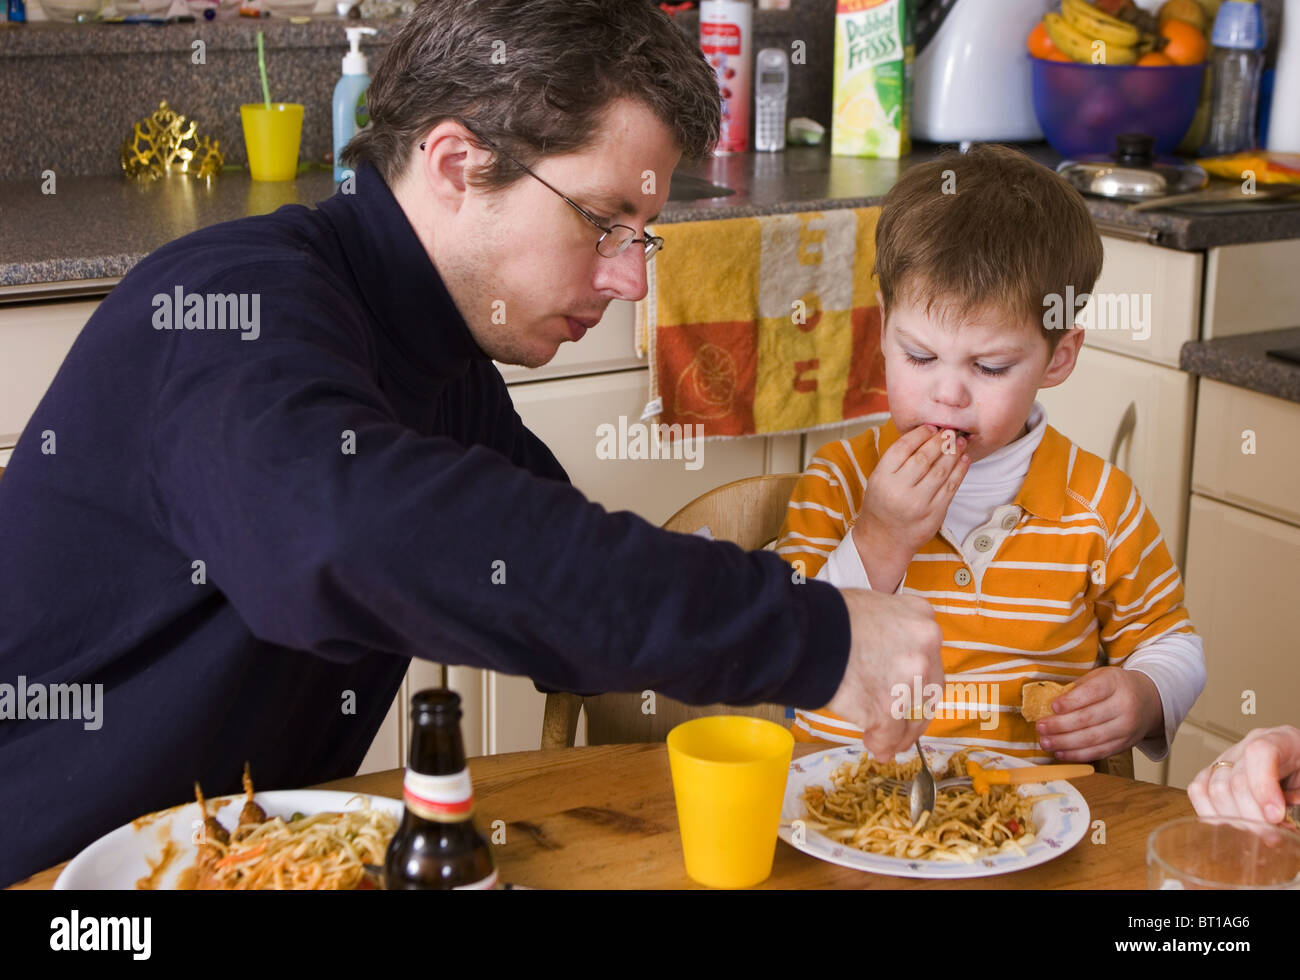 Child with father at dinner table - Stock Image